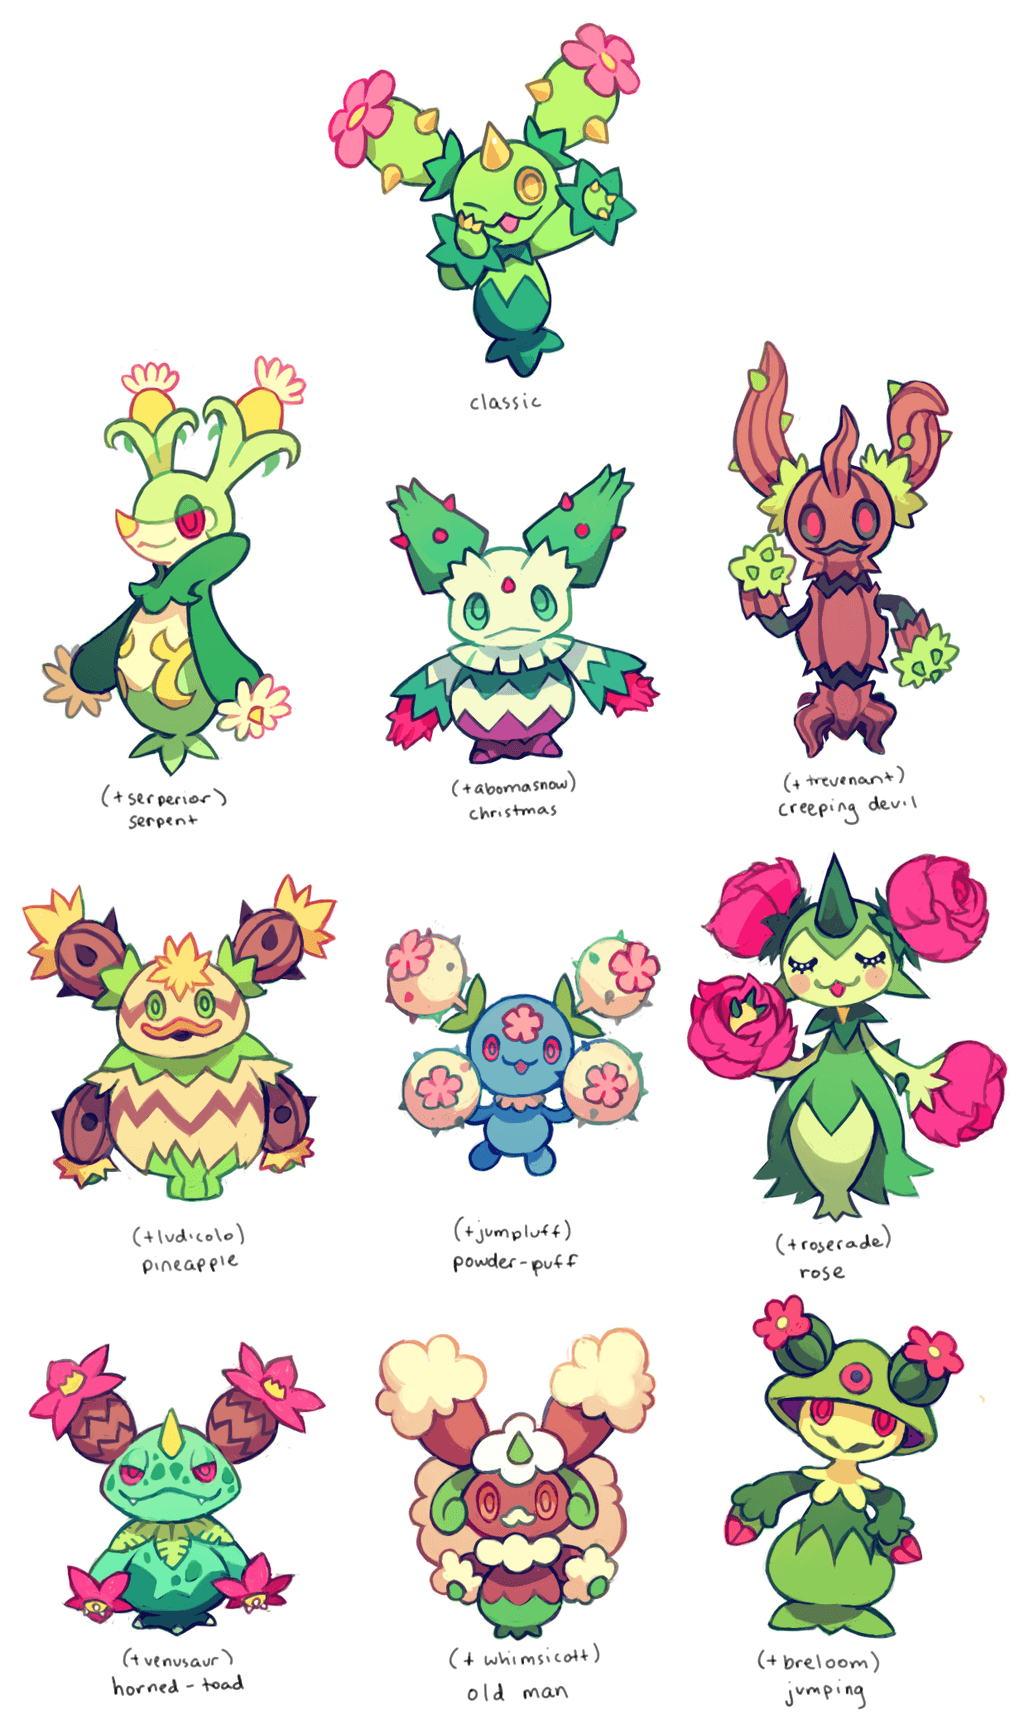 maractus variations by extyrannomon.deviantart on @DeviantArt